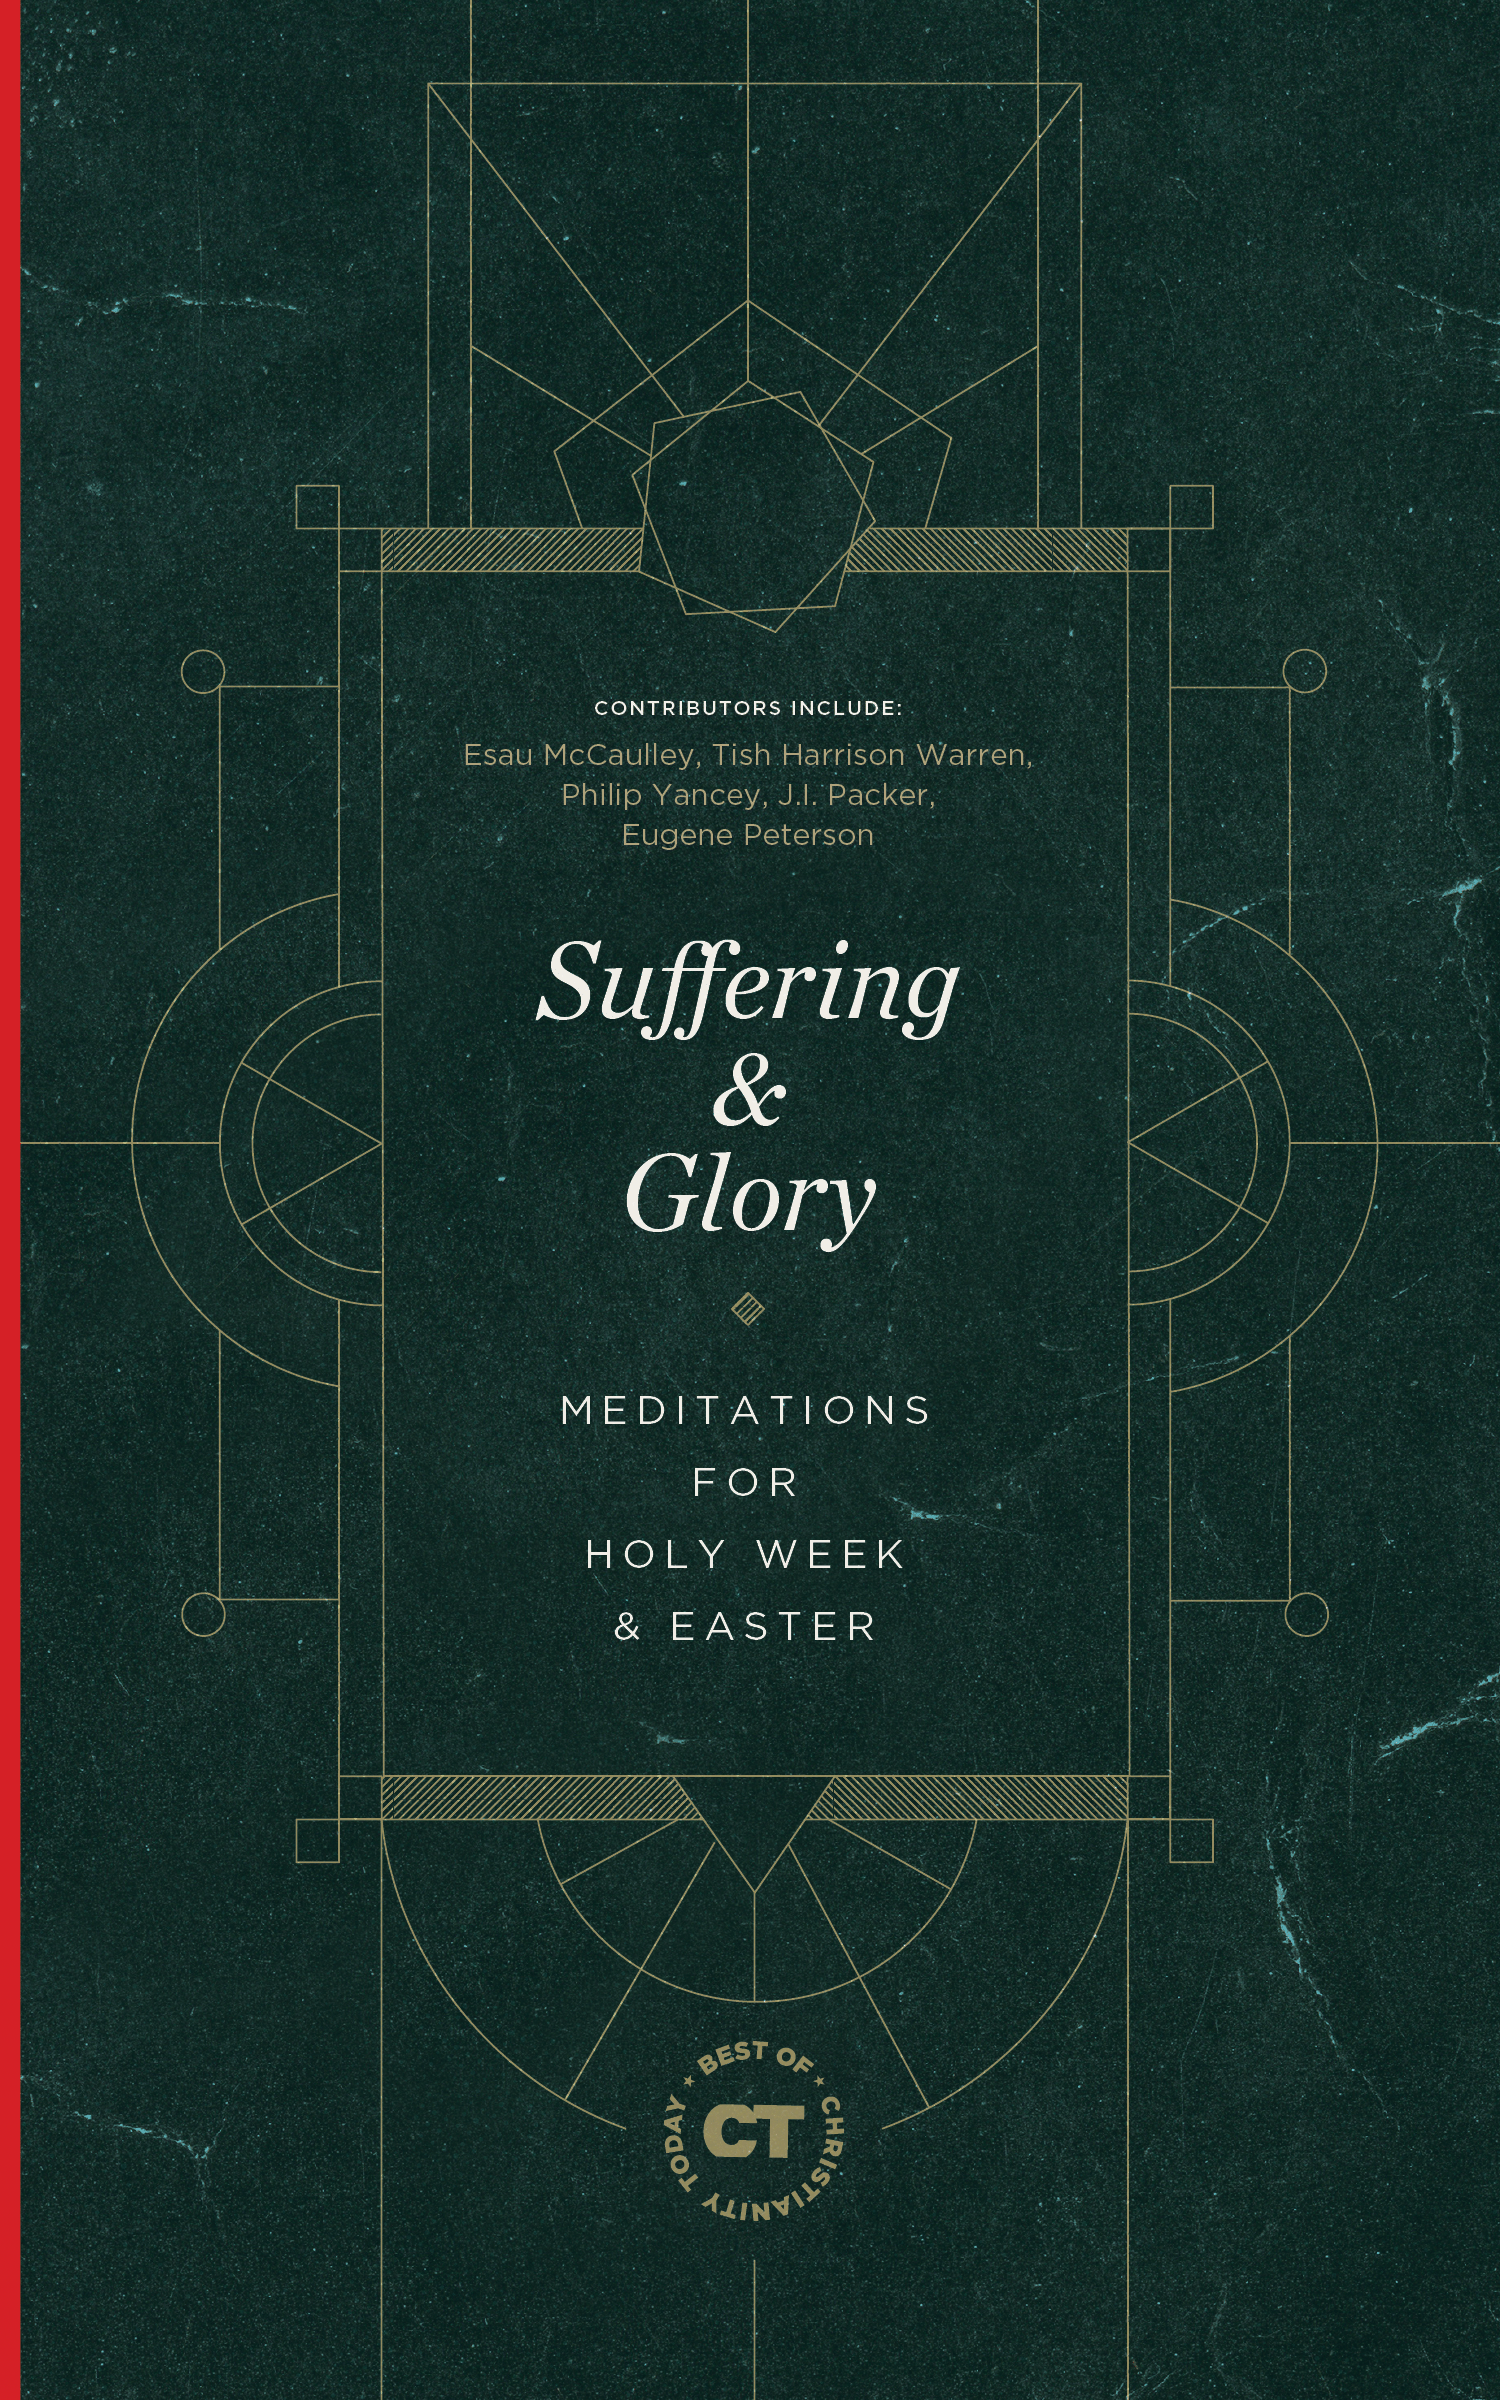 Suffering & Glory